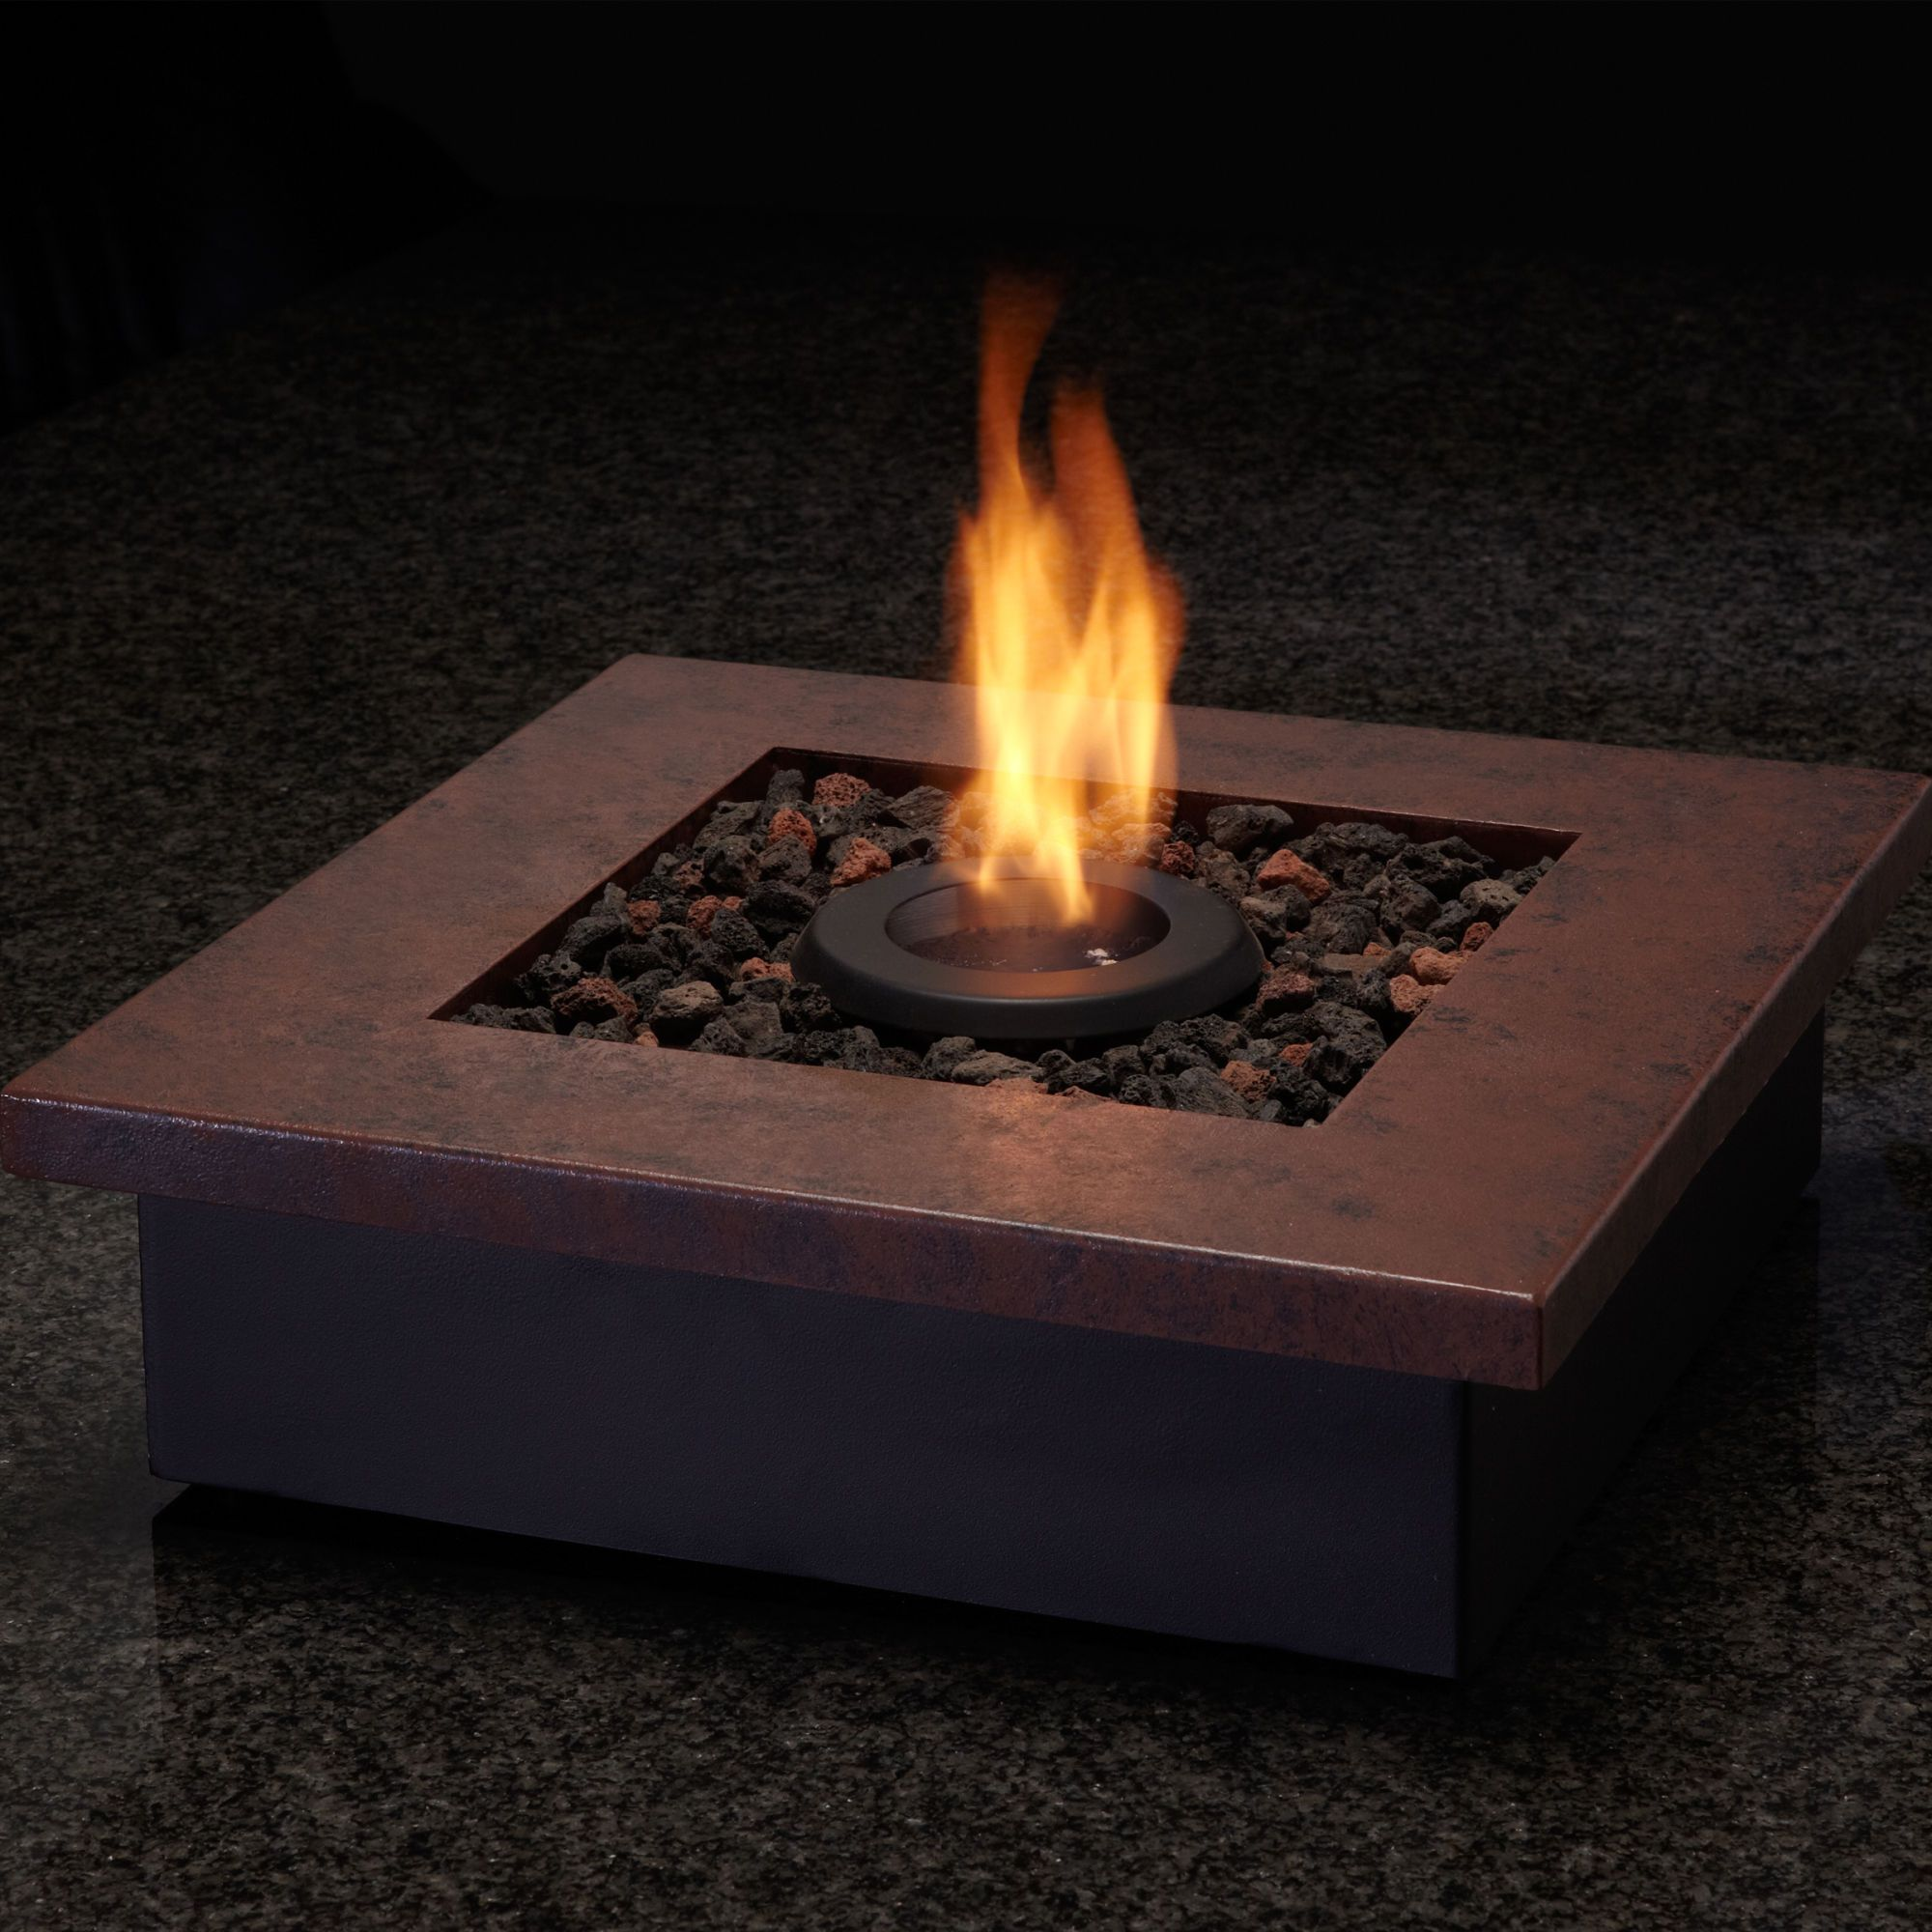 ascent™™ electric fireplace  night fireplaces and zen - ascent™™ electric fireplace